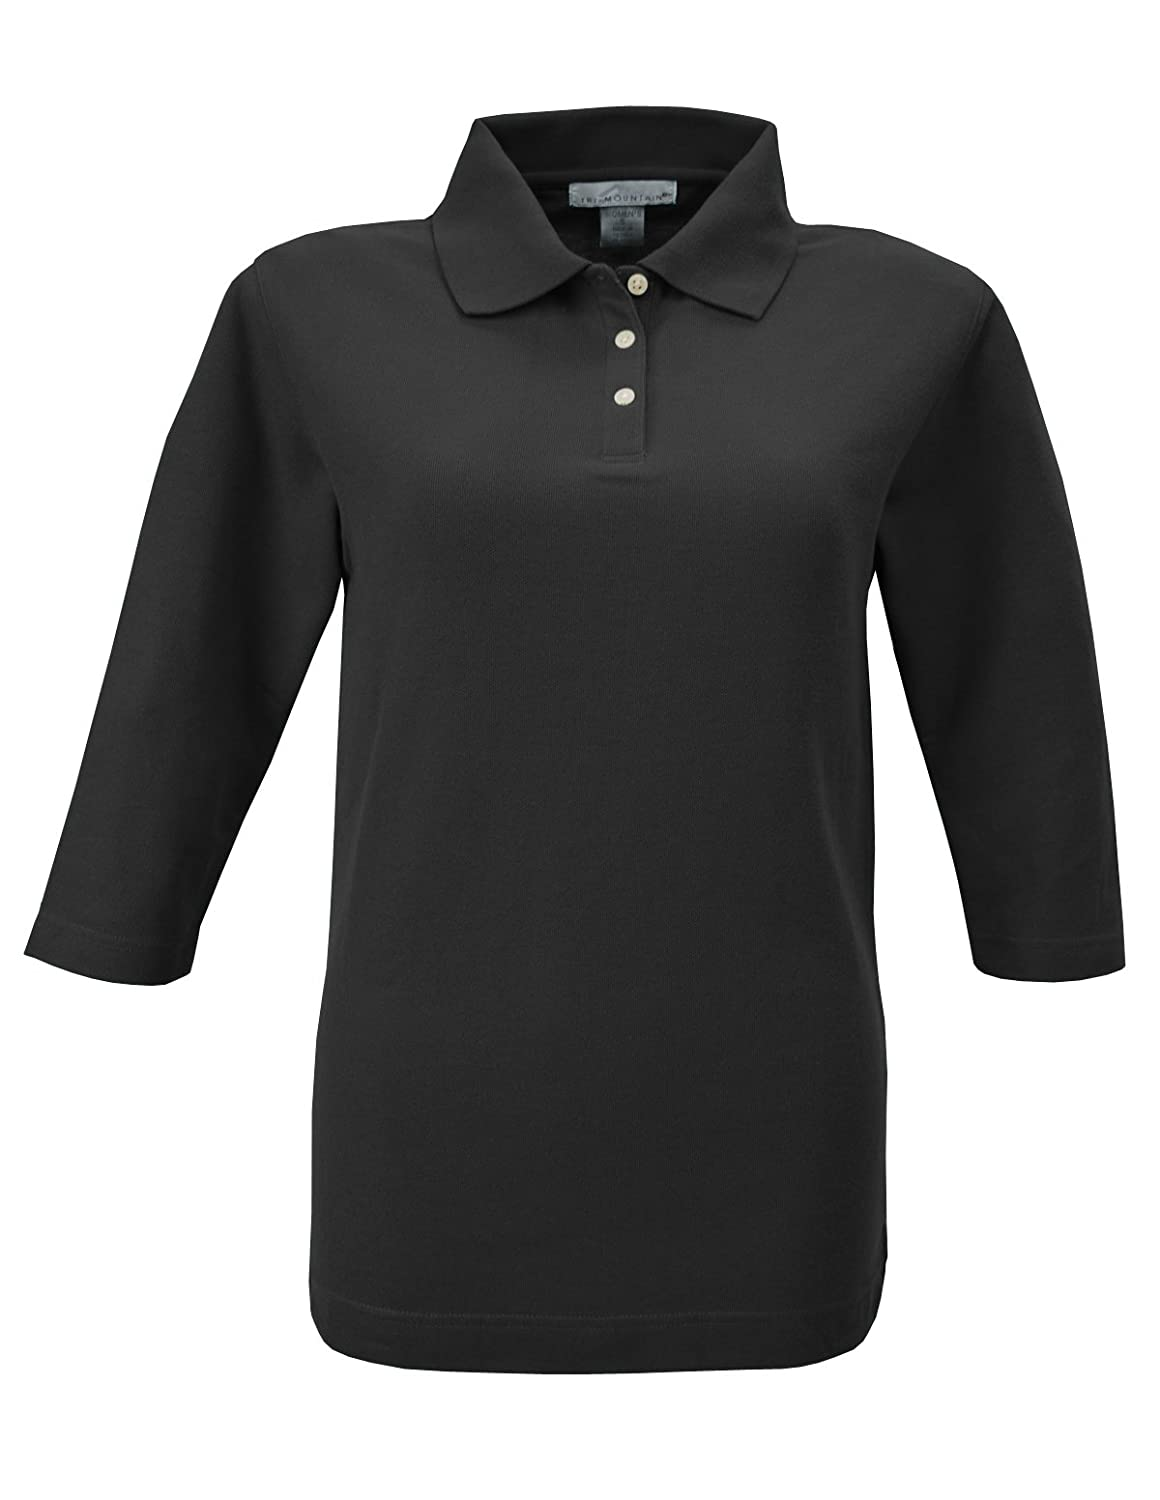 Tri Mountain Womens 34 Sleeve Pique Knit Golf Shirt At Amazon